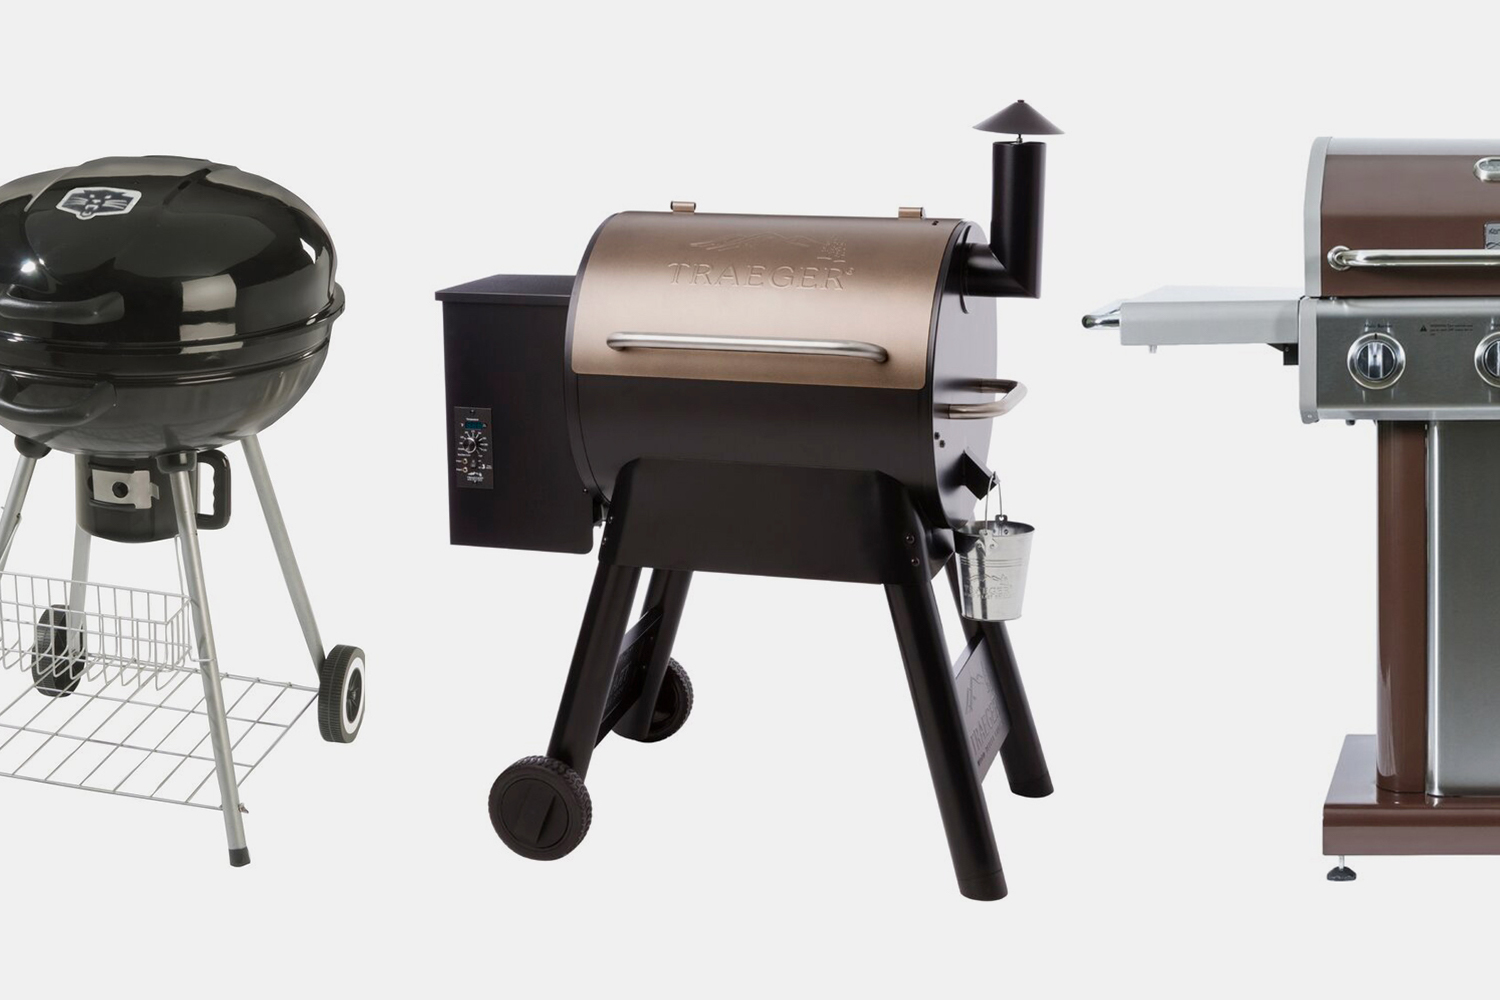 Grills on sale at Wayfair from Traeger, Kenmore and PantherGrill